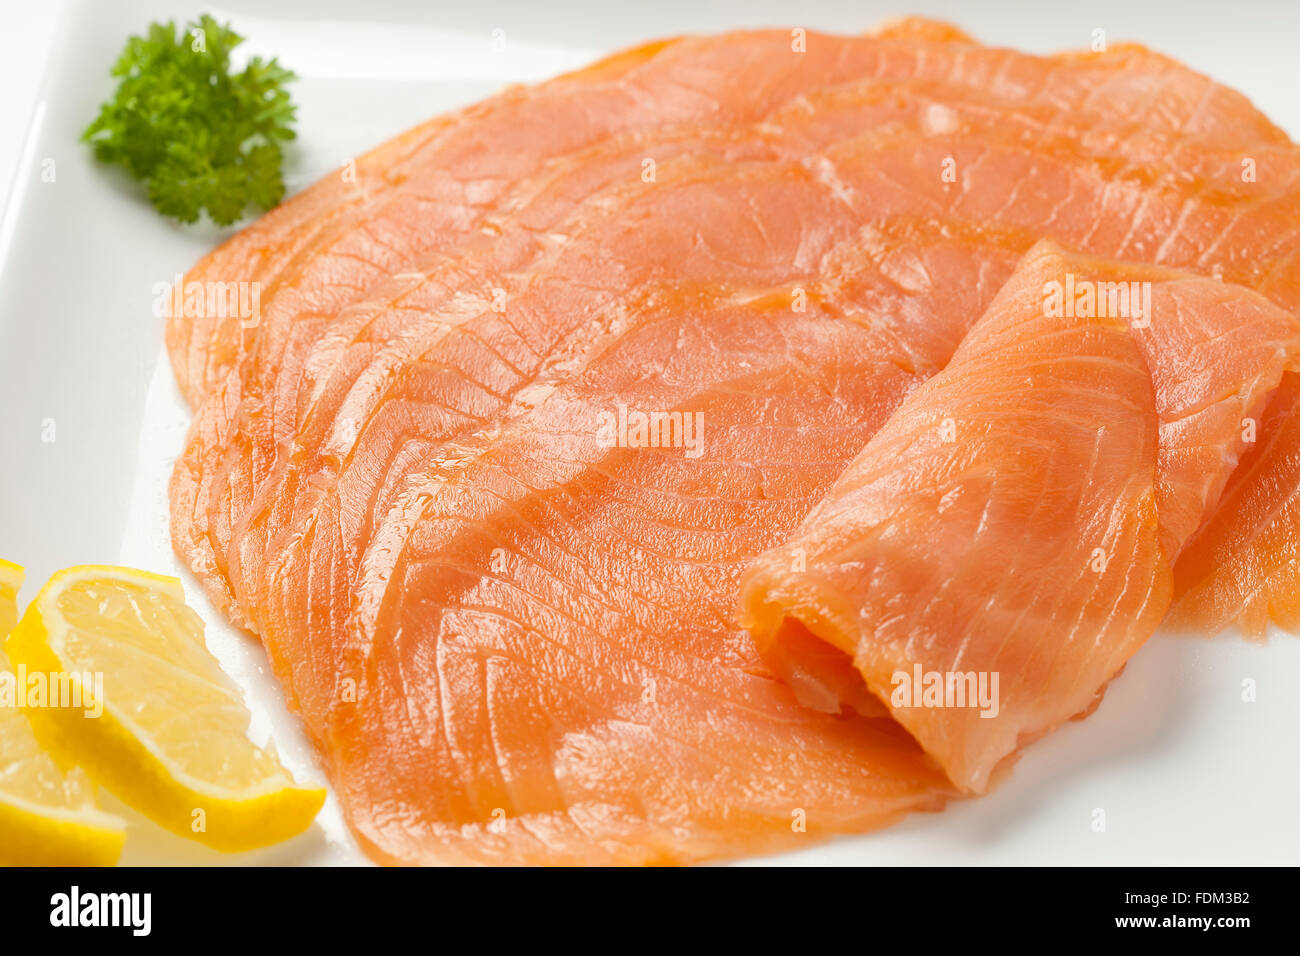 Smoked salmon slices on a plate - Stock Image